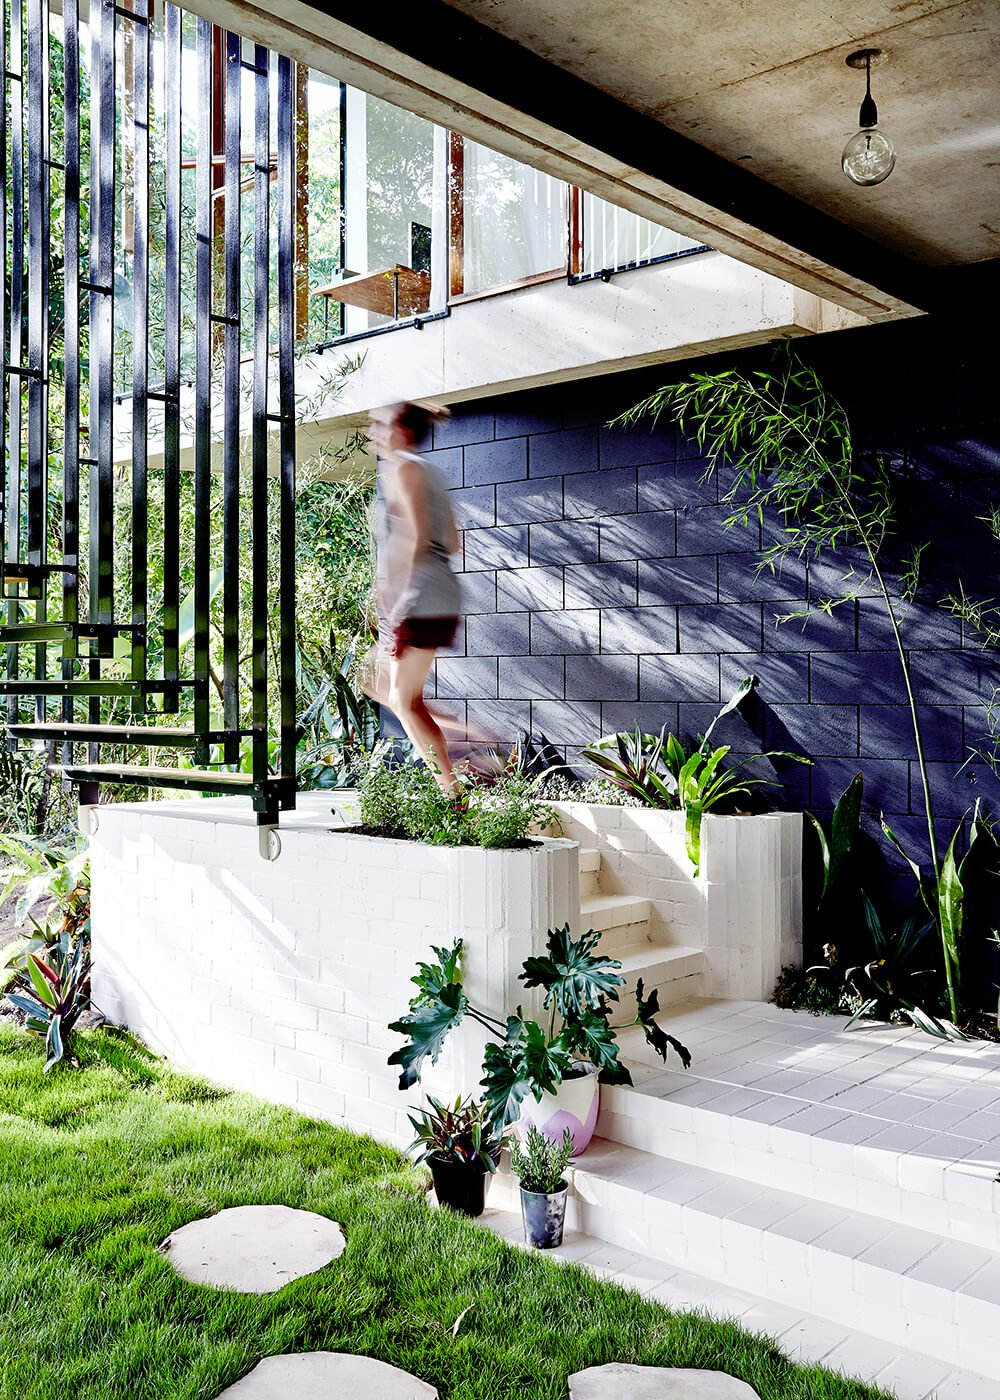 Moving down the outdoor staircase to the ground level, we come to the bold contrast where the dark brick foundation meets a white brick patio. This courtyard continues the structure's communion with nature.